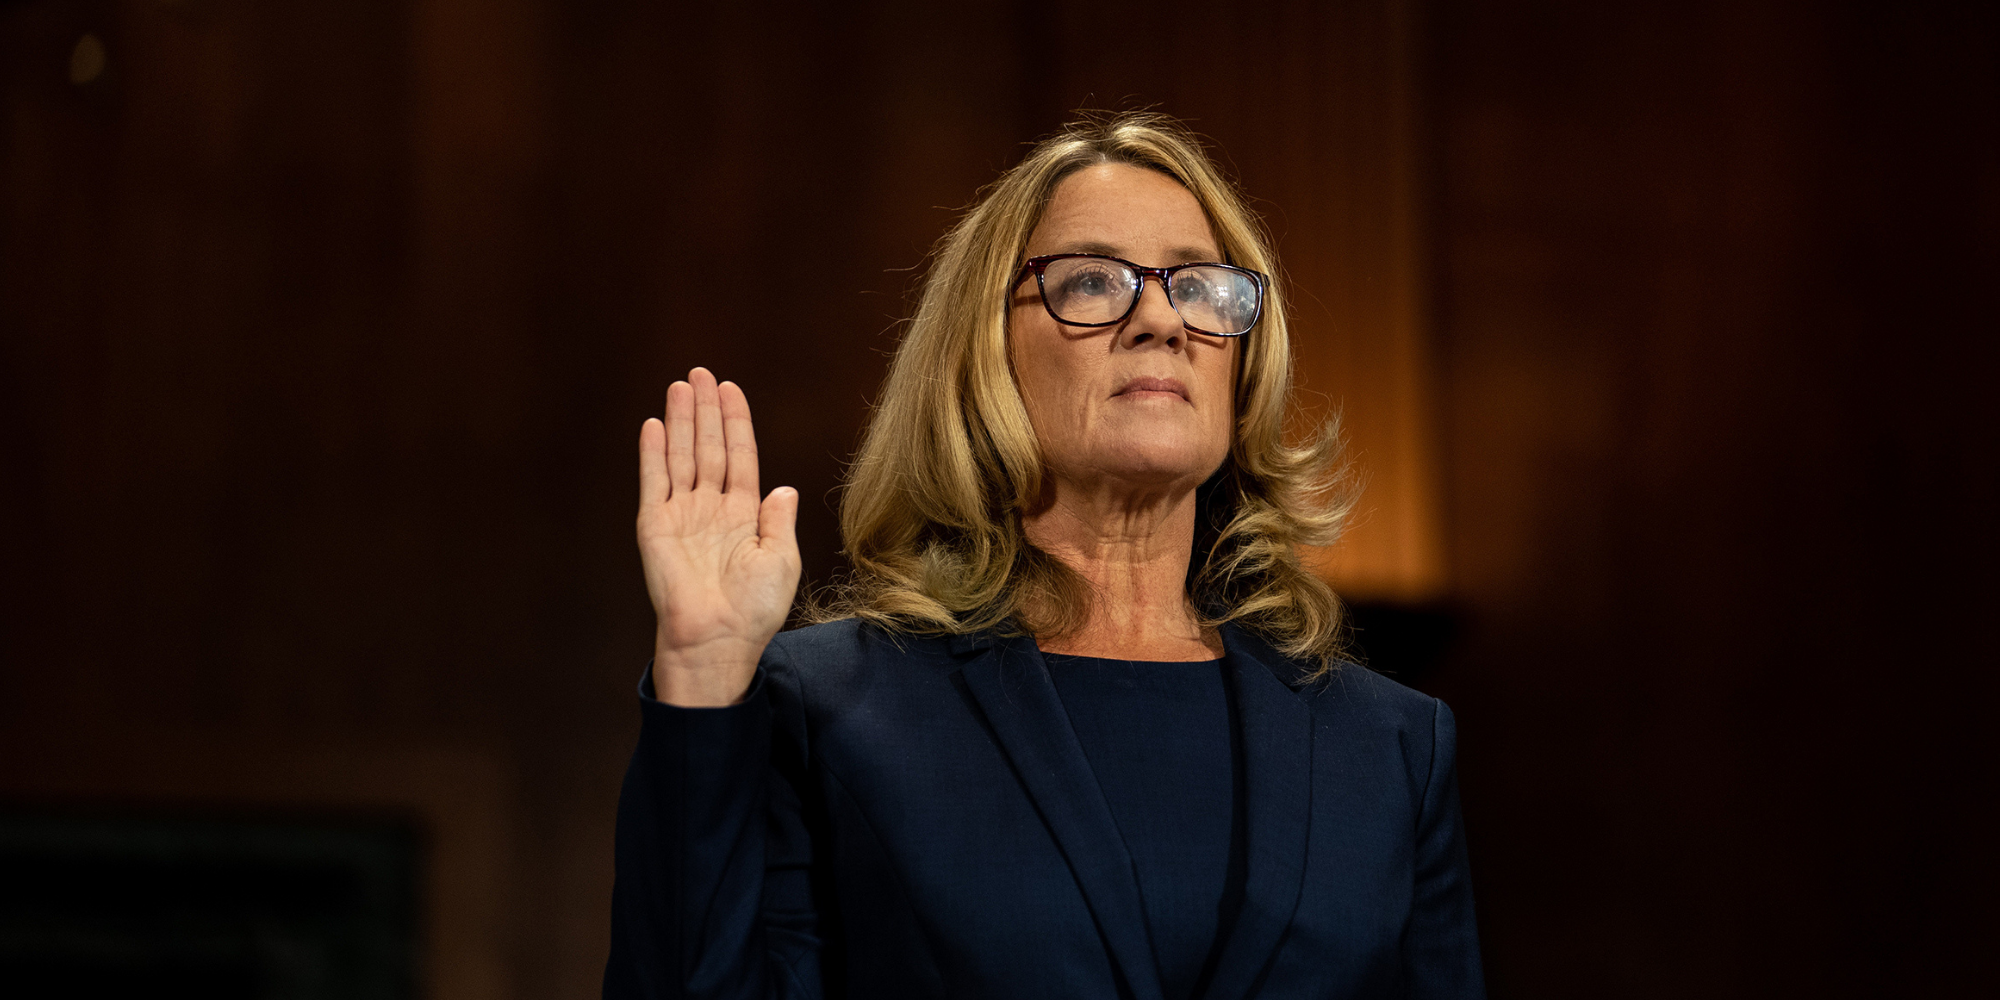 We Should Be Heard: Christine Blasey Ford's Voice in Politics